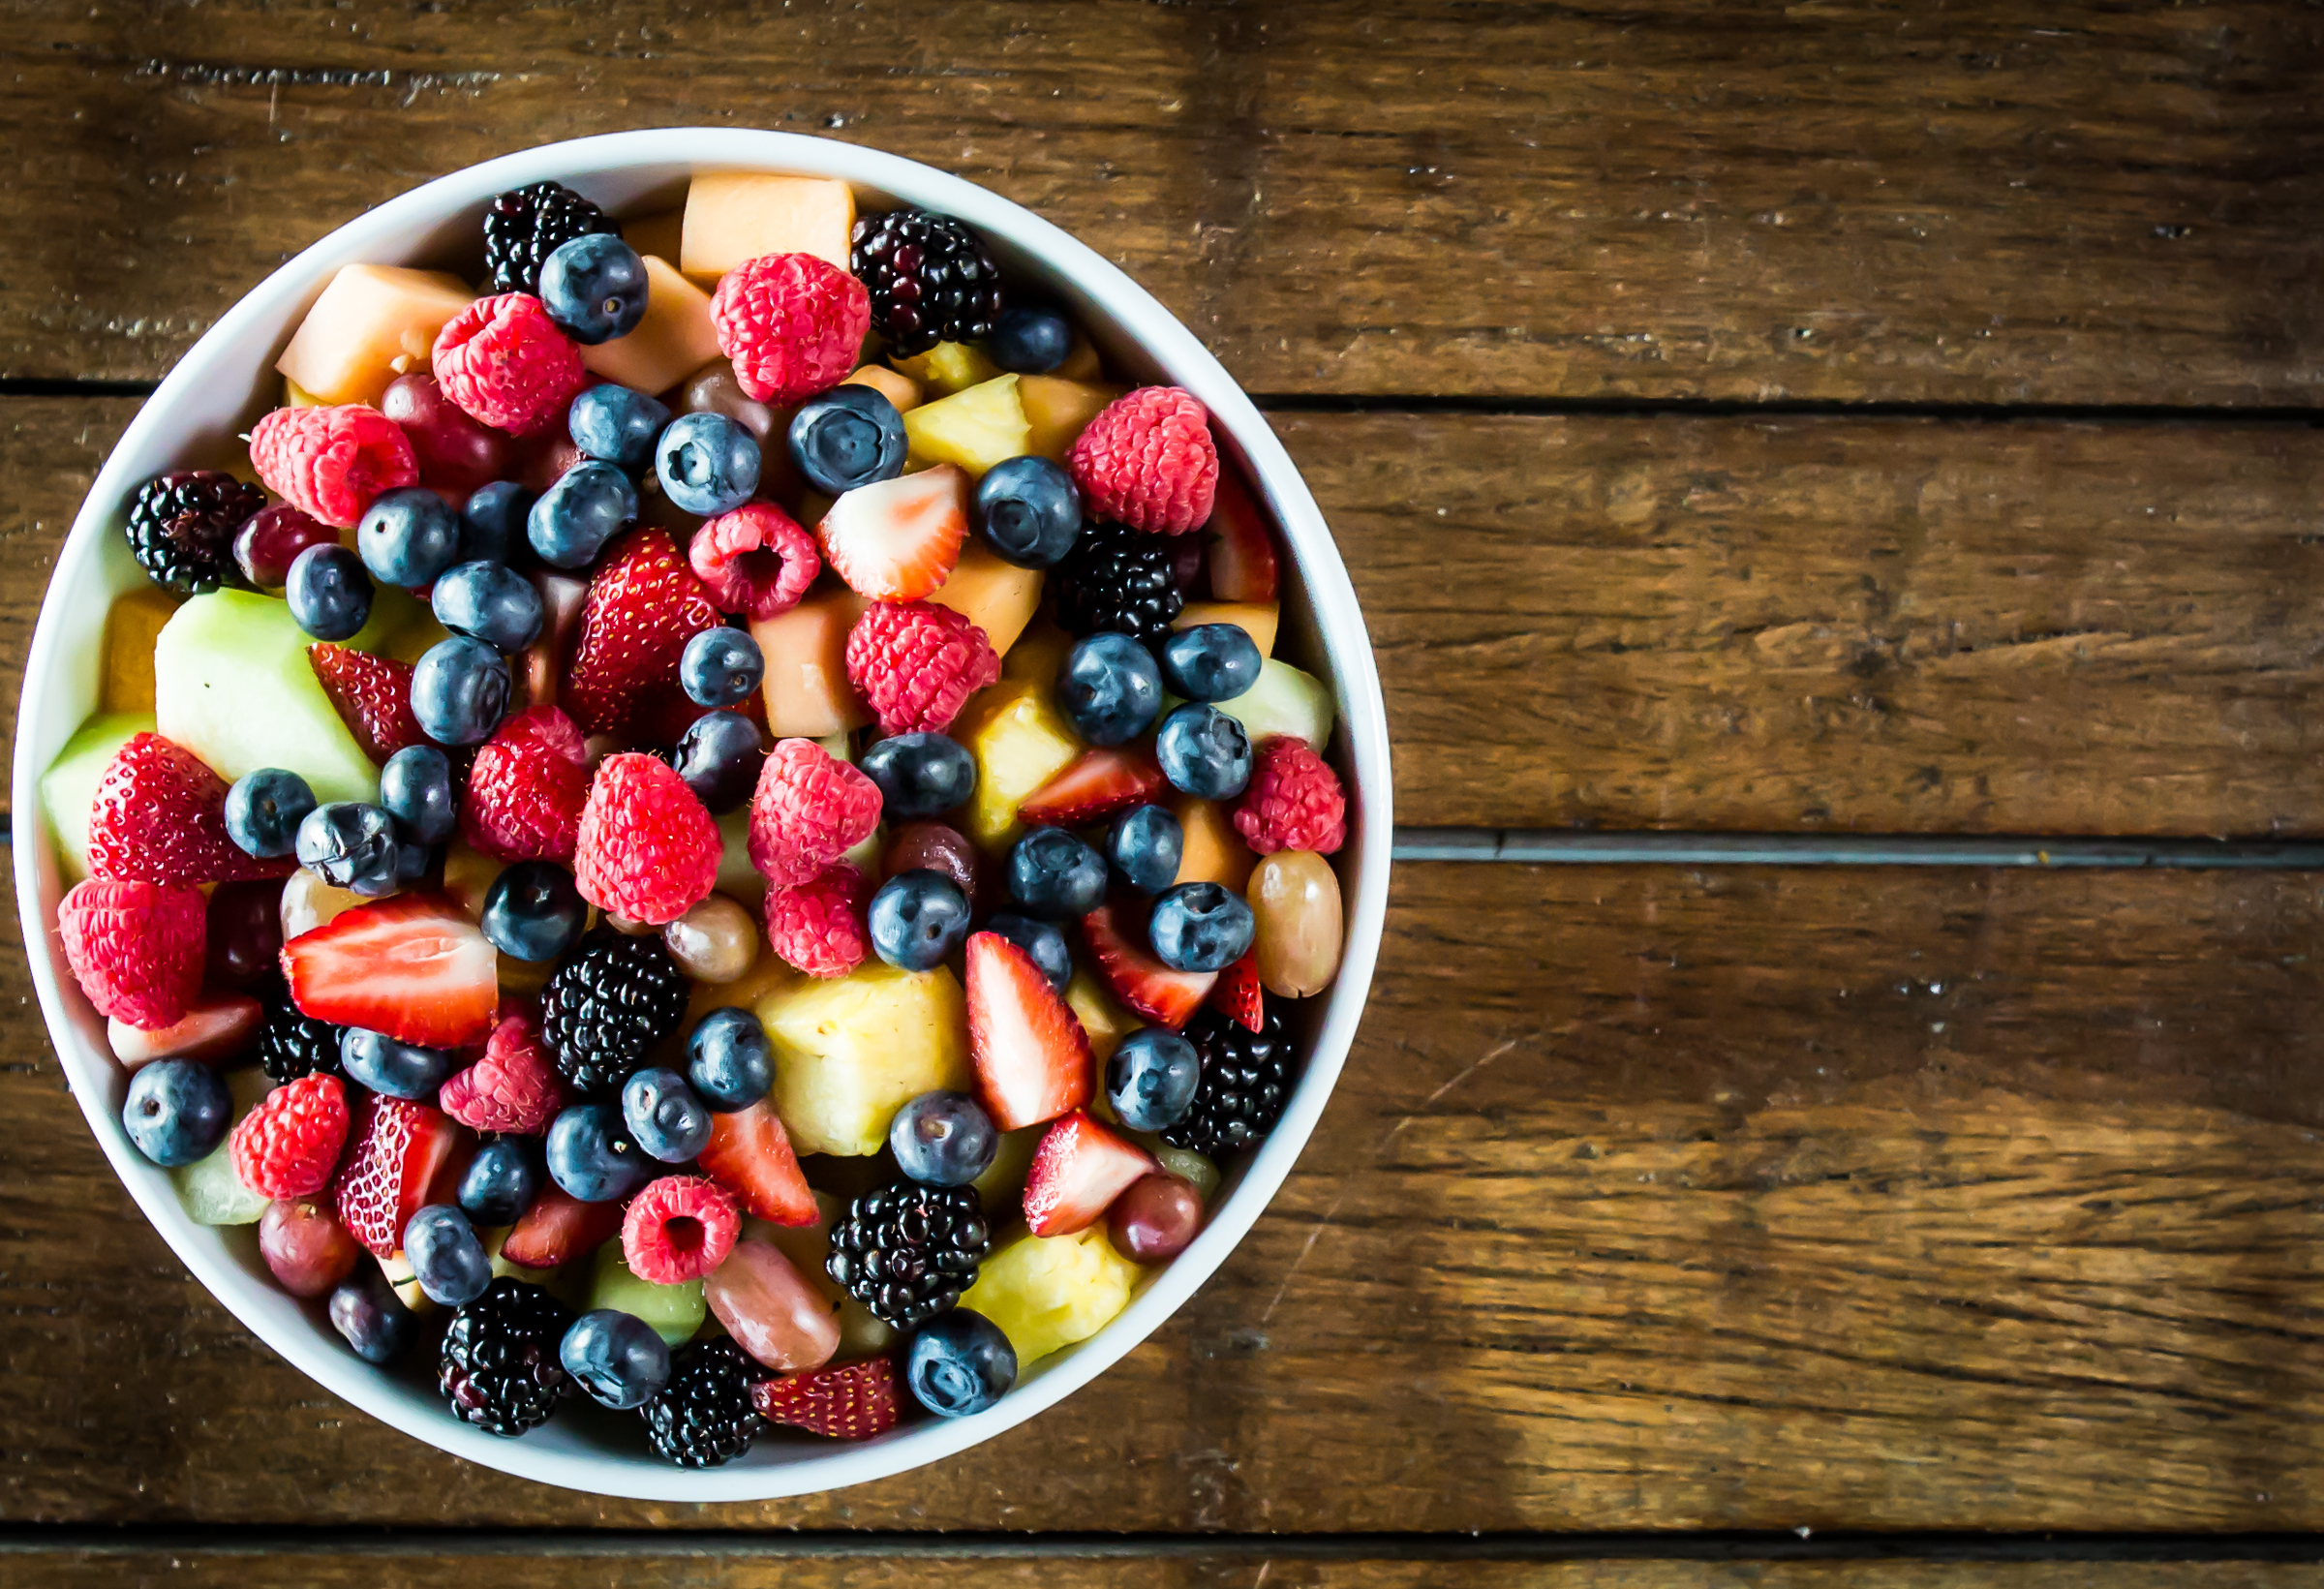 Mixed Fruit Bowl.jpg